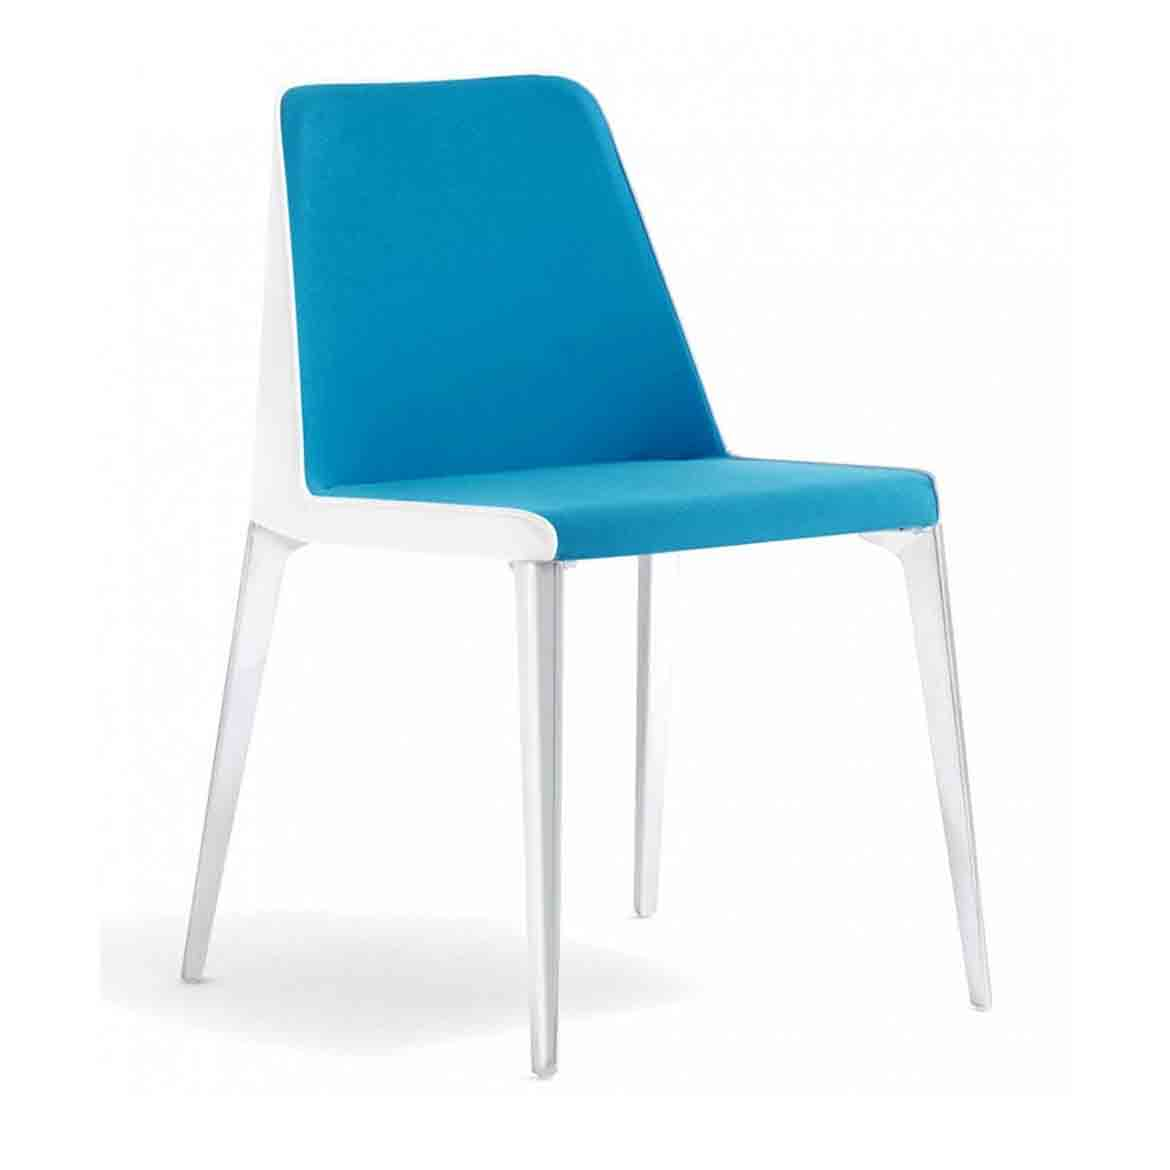 The legs can be powder coated to match the upholstery or they can be polished. The seat is made of crossed elastic belts, covered by polyurethane foam. The upholstery could be entirely with fabric or leather (or eco leather) for the outside and fabric for the inside shell. Available also in C.O.M.